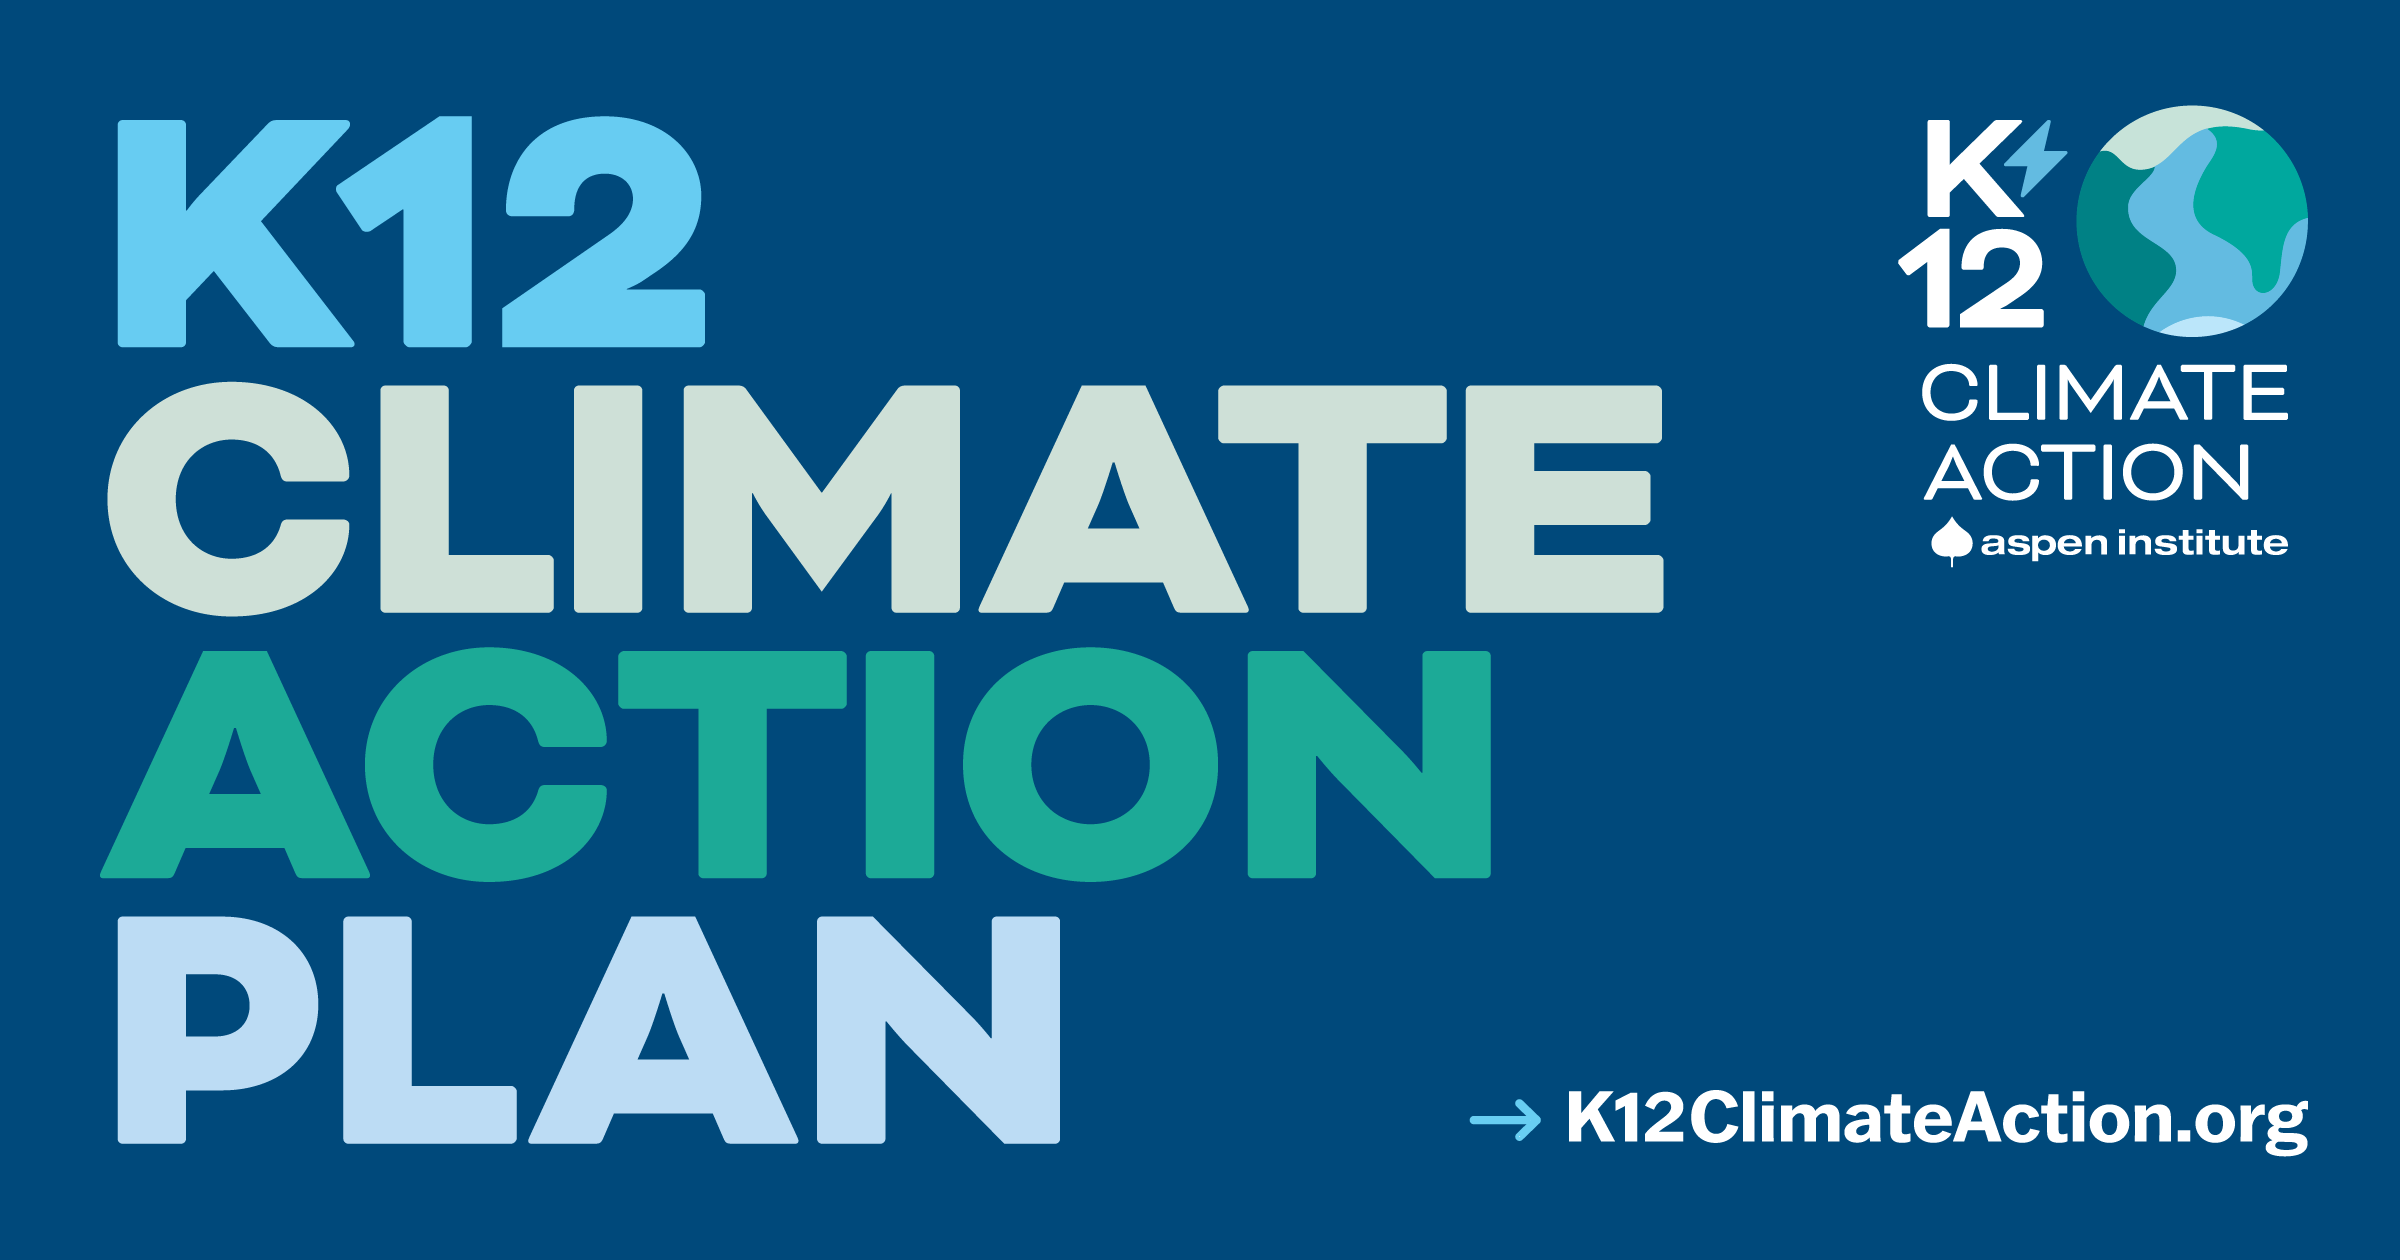 K12 Climate Action Plan Blog Post